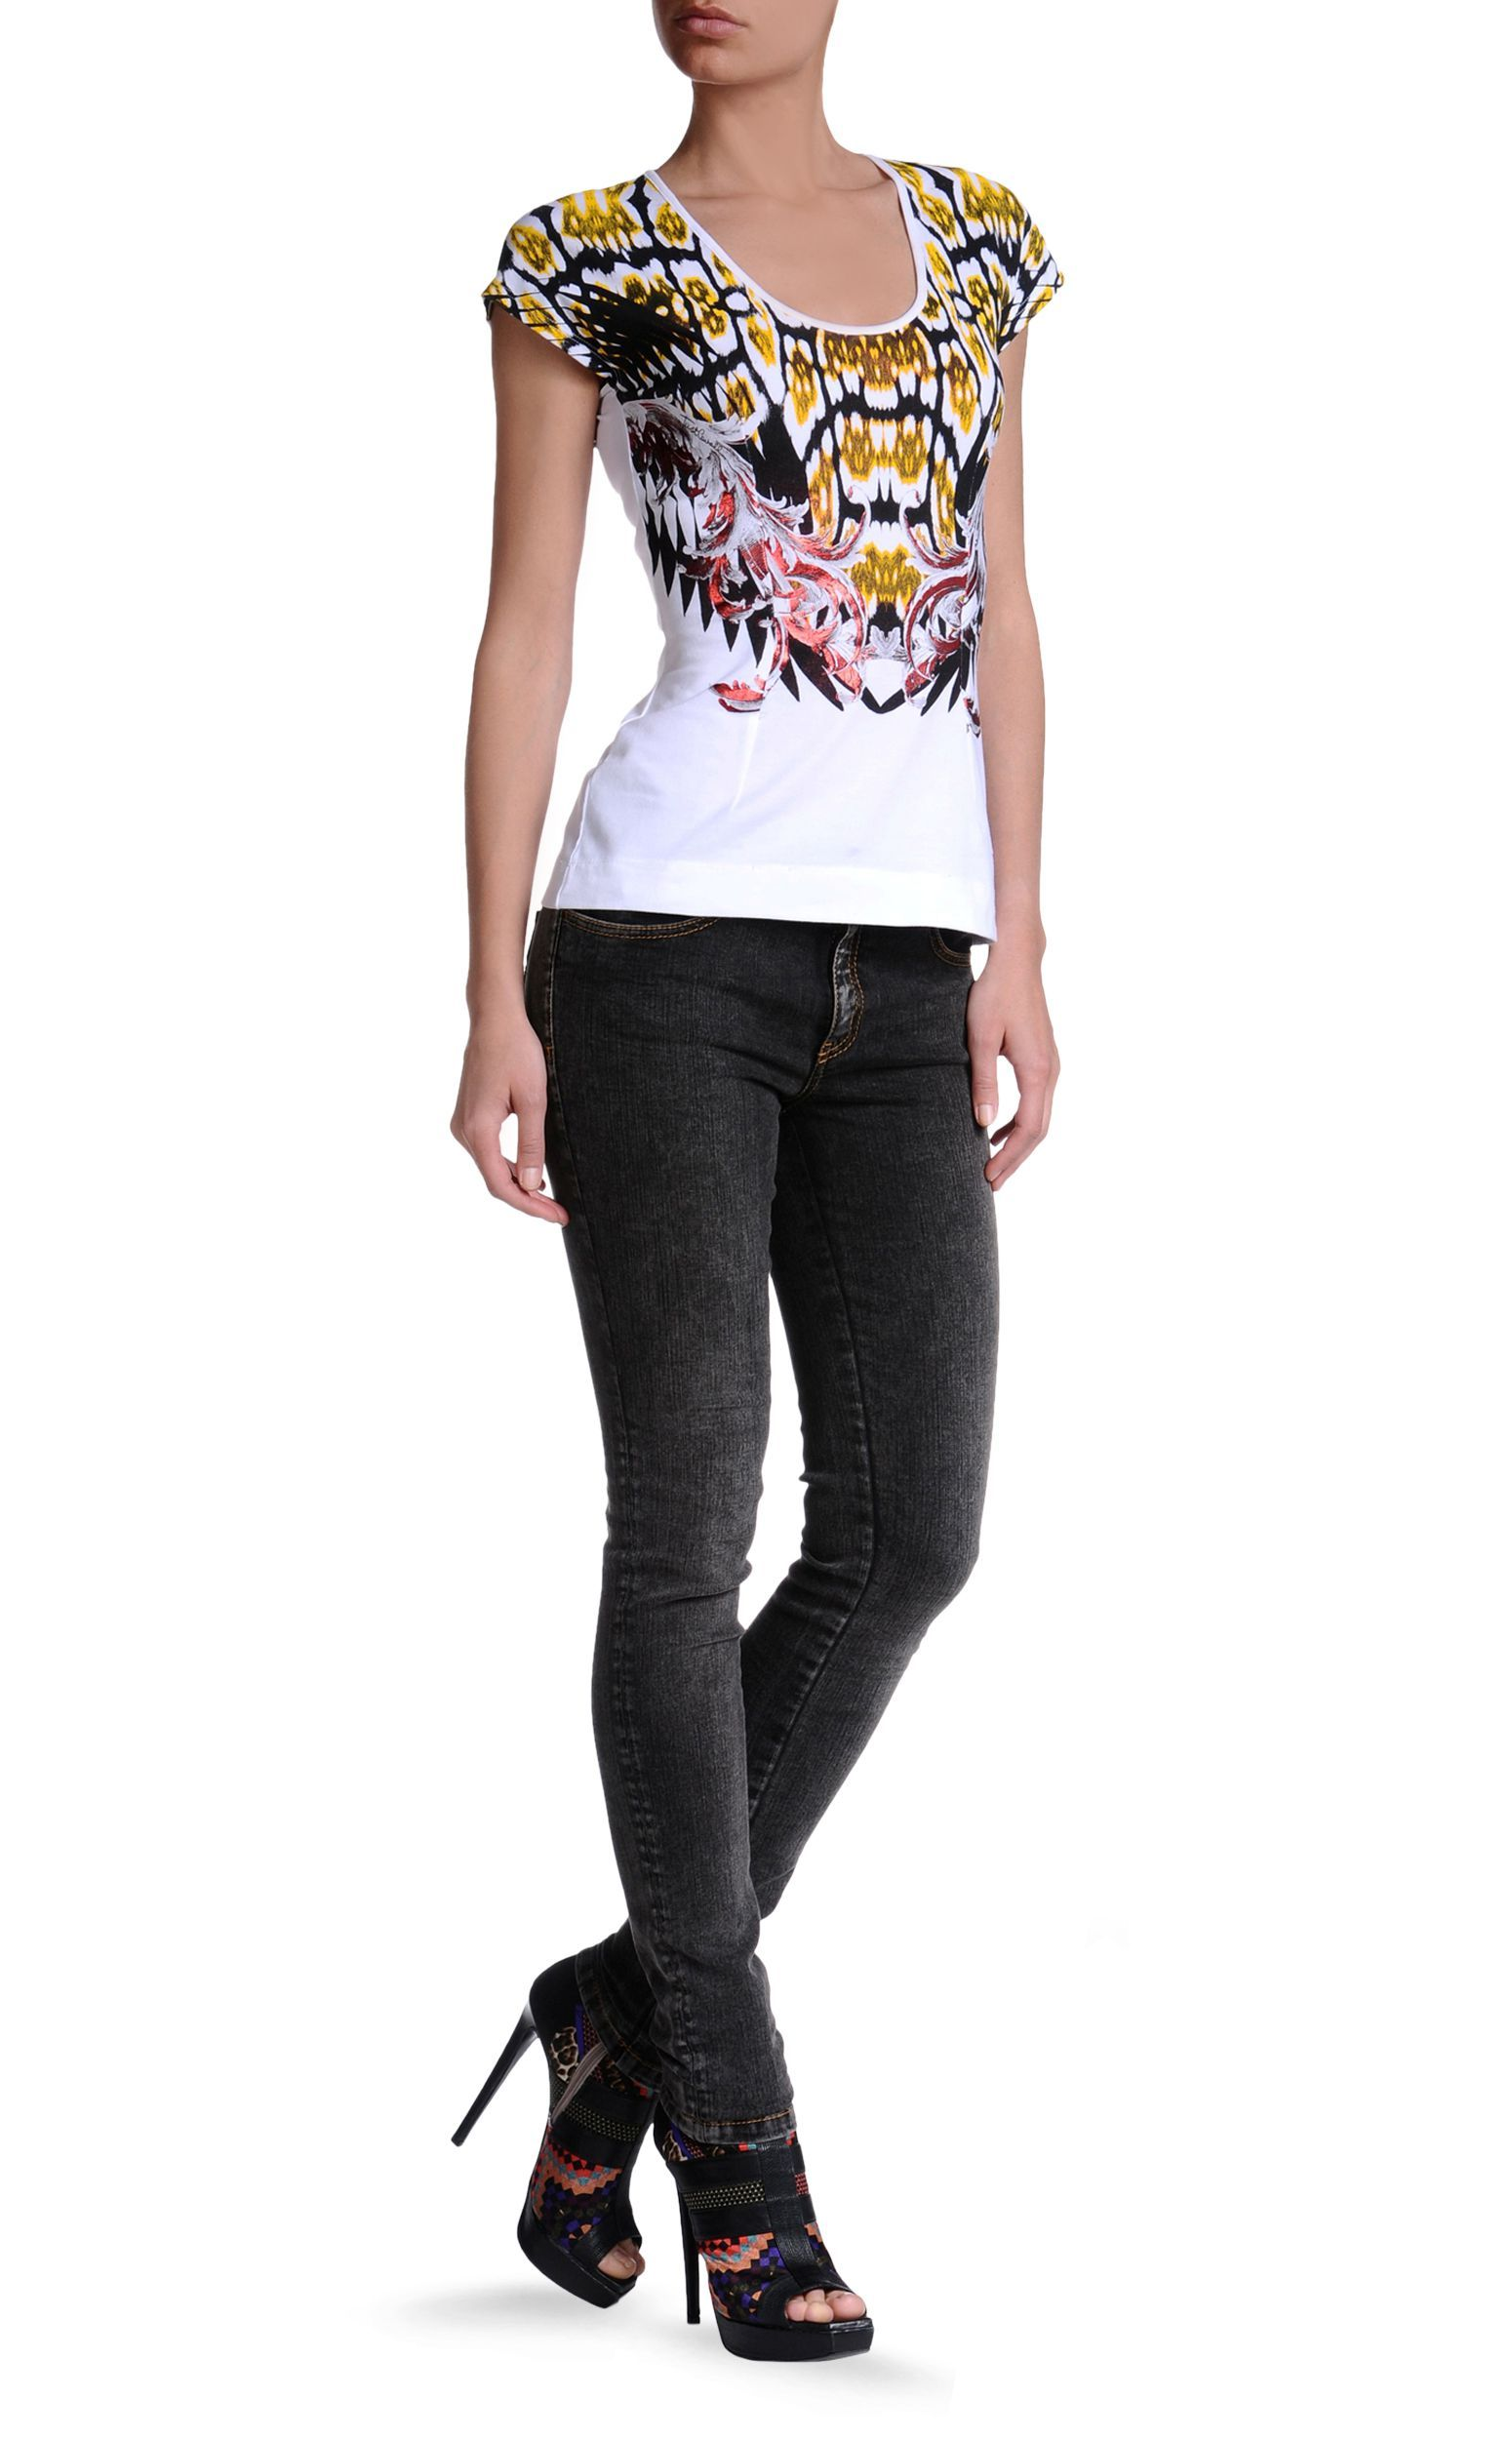 Short sleeve t-shirt Women - Topwear Women on Just Cavalli Online Store